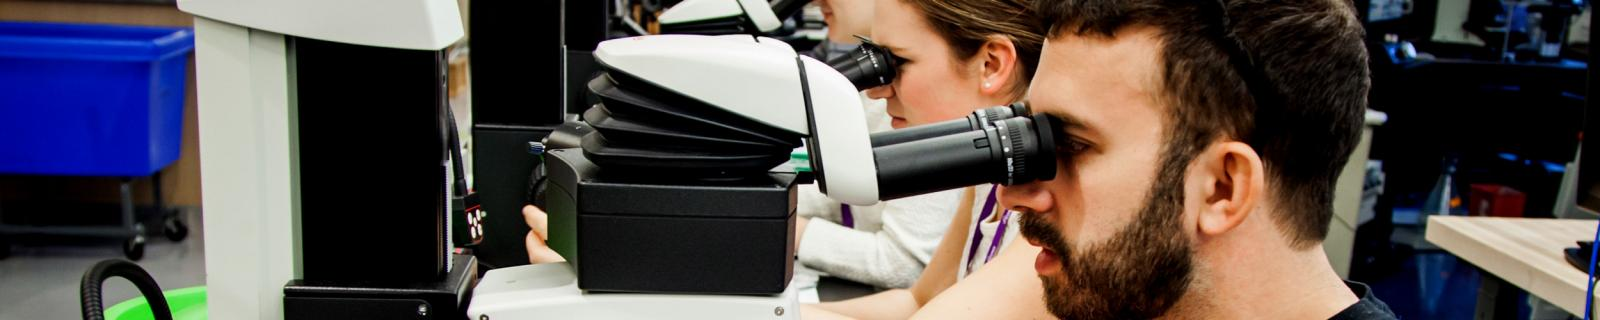 Neuroscience Institute Trainees Examine Samples Using High-Resolution Microscopes